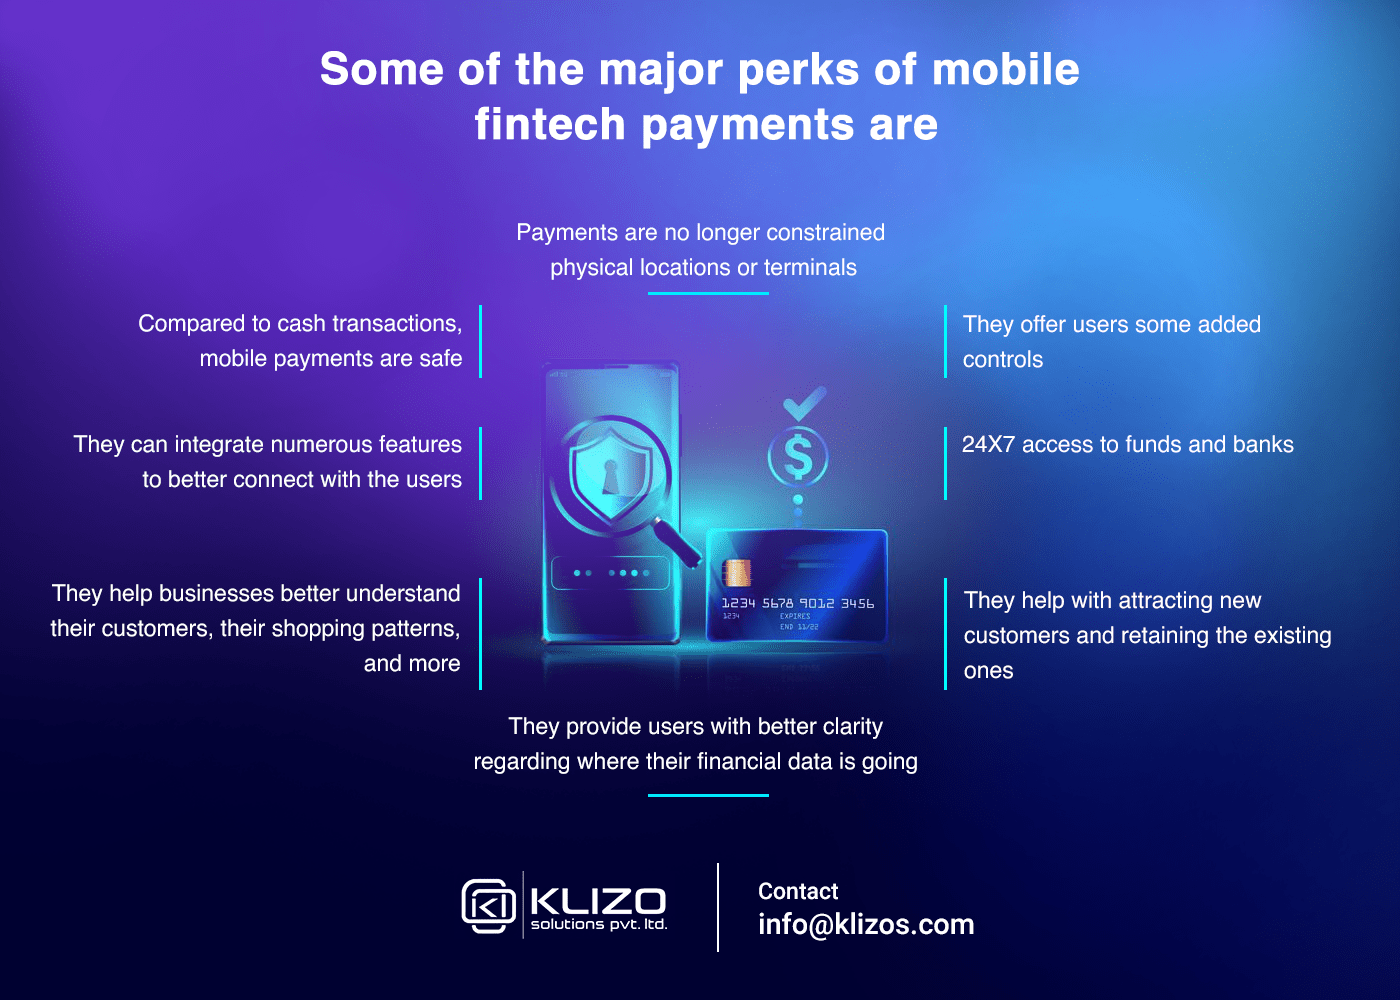 benefits of mobile payment in fintech industry - Klizo